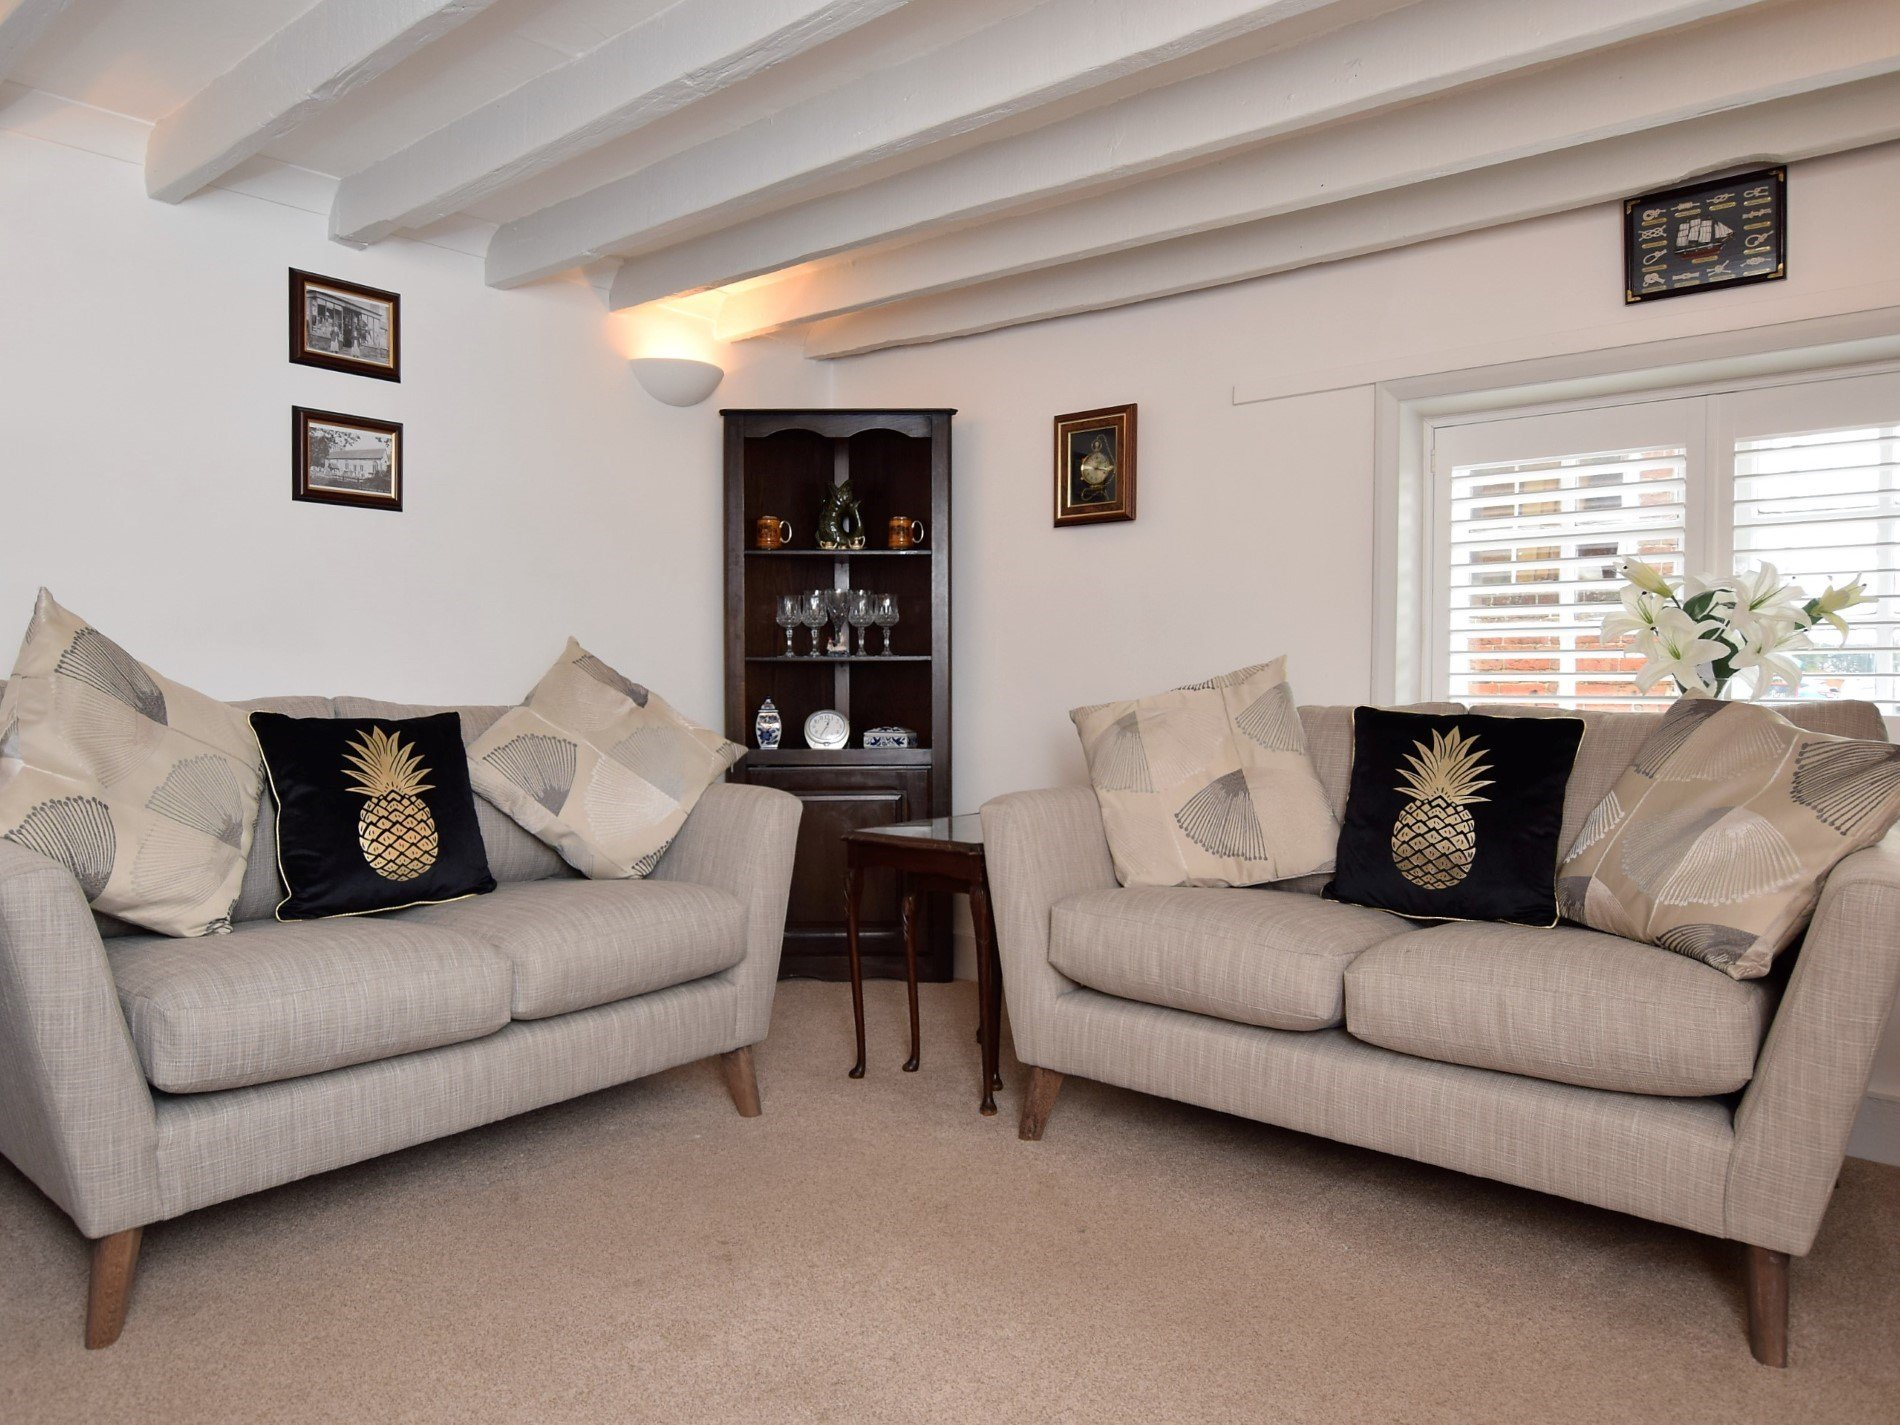 2 Bedroom Cottage in Rye, South of England